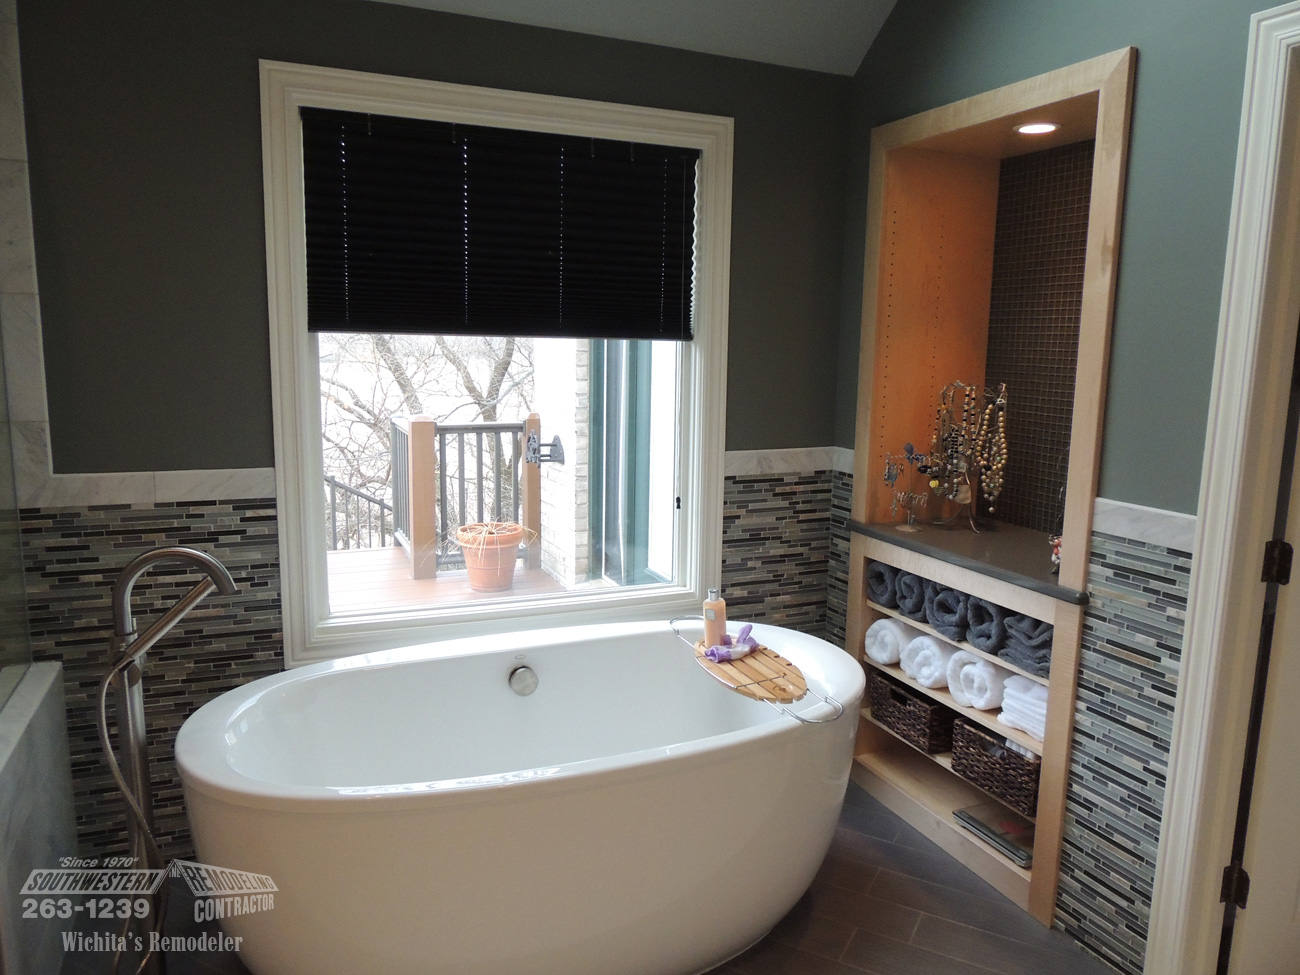 Bathroom Remodeling Wichita Ks Fascinating Bathroom Remodeling  Southwestern Remodeling  Wichita Decorating Design